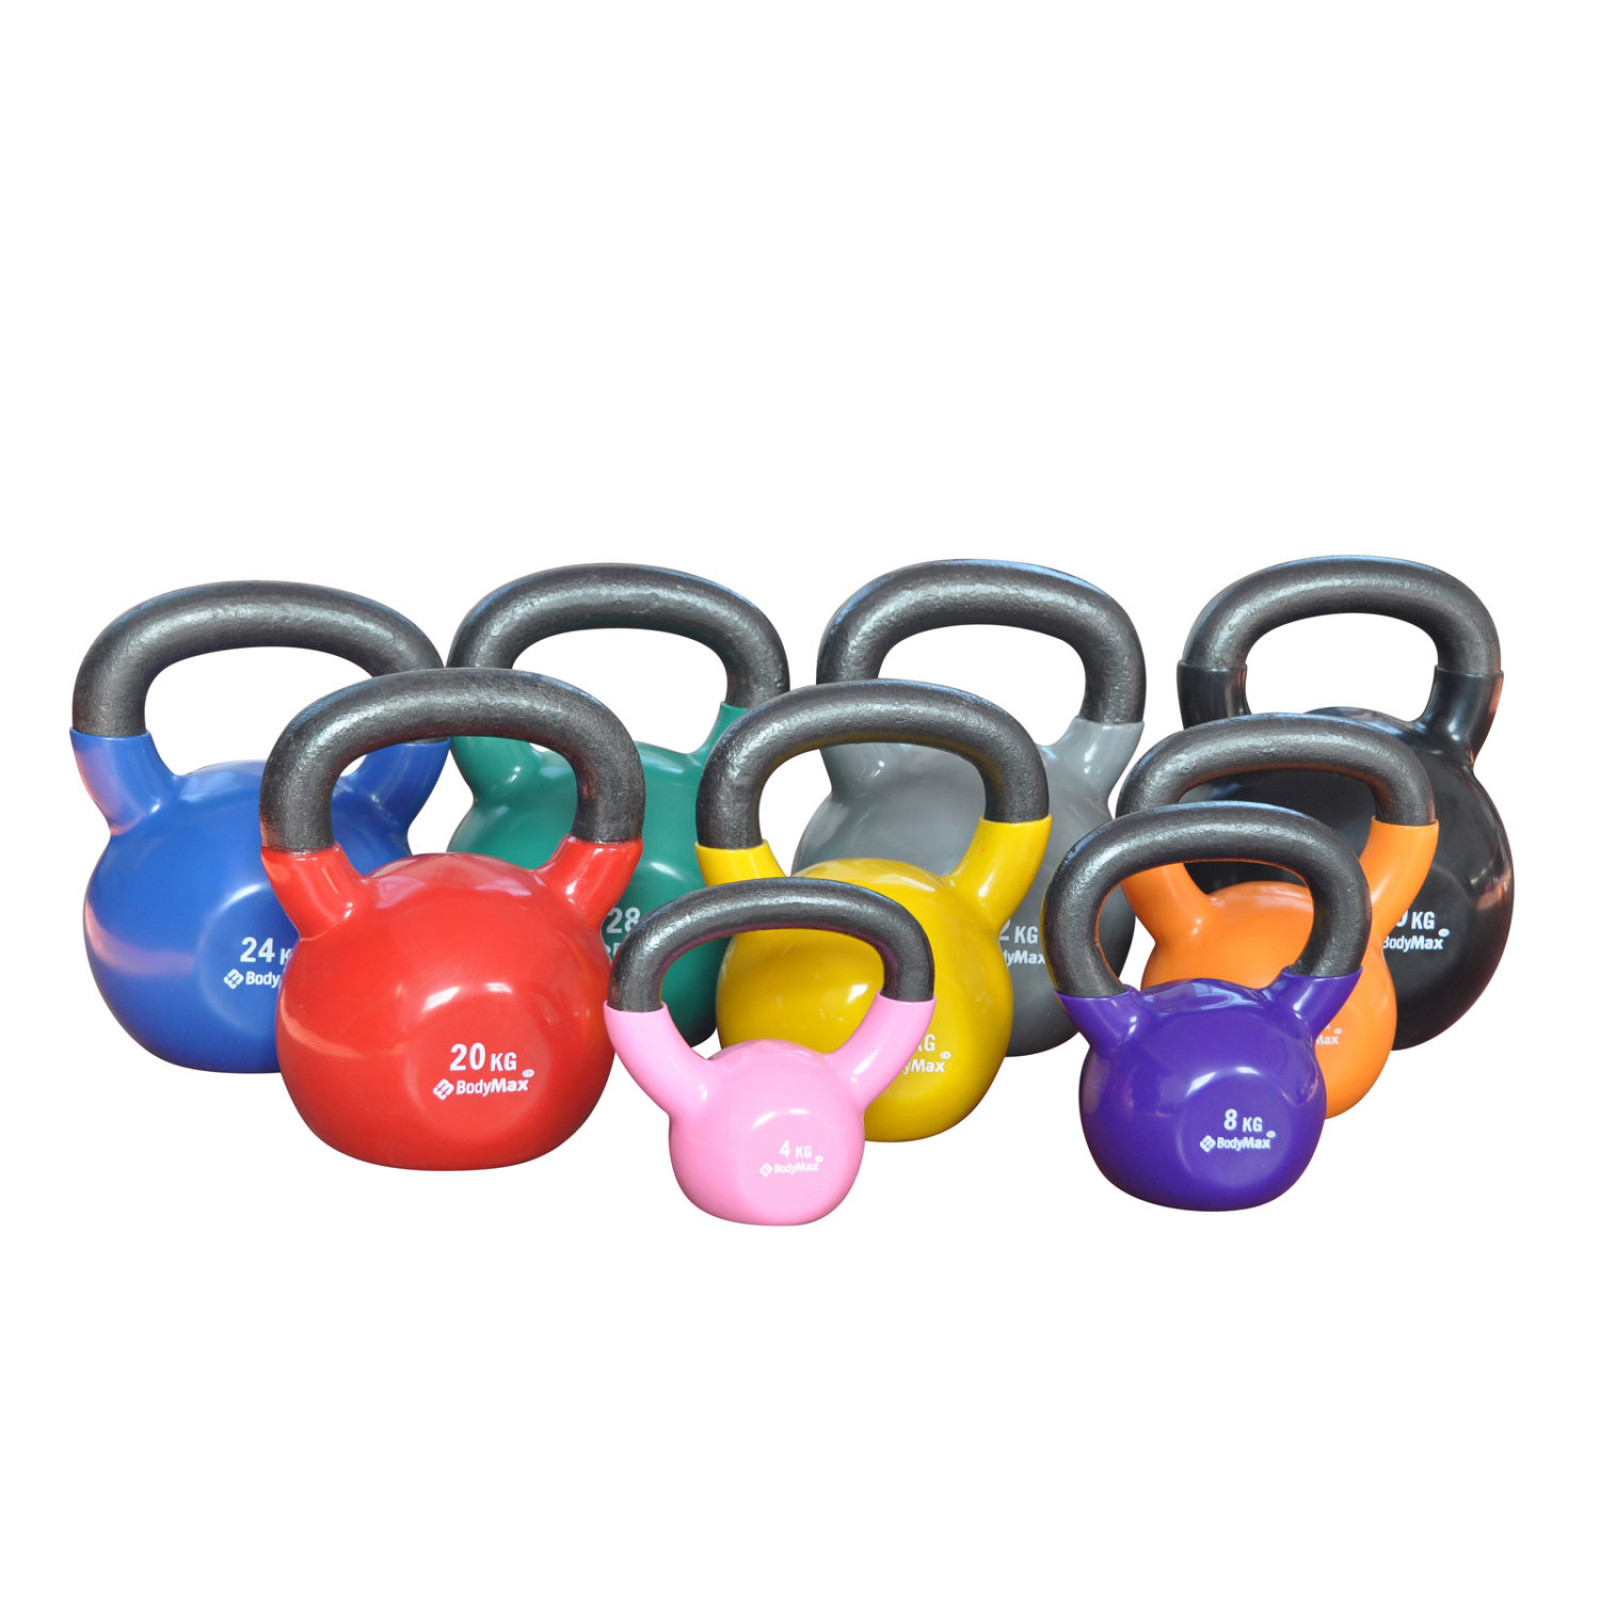 Bodymax Kettlebells Cast Iron Vinyl Coated Powerhouse